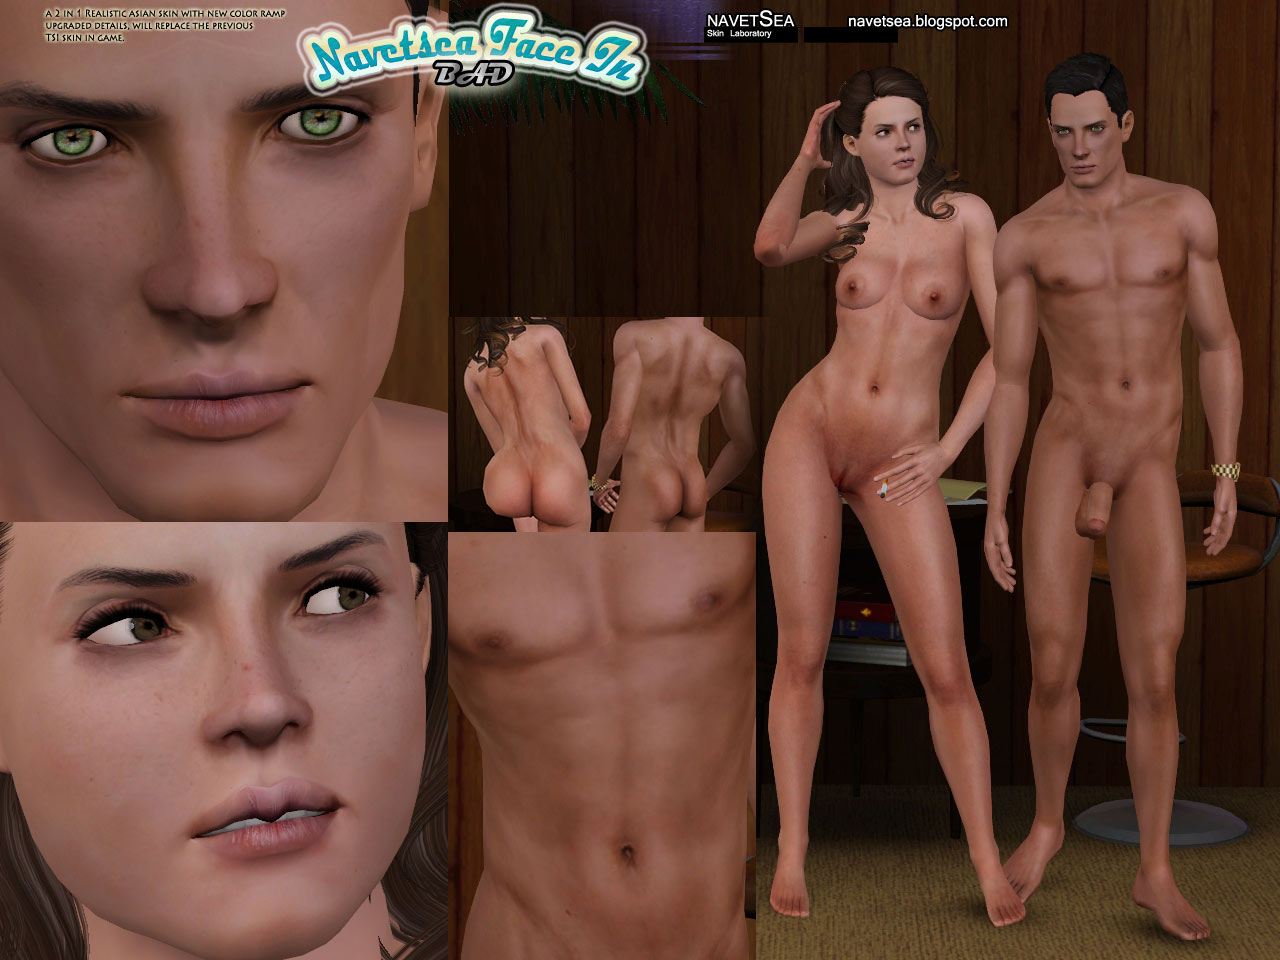 Sims 2 nude mods for v sexual movies